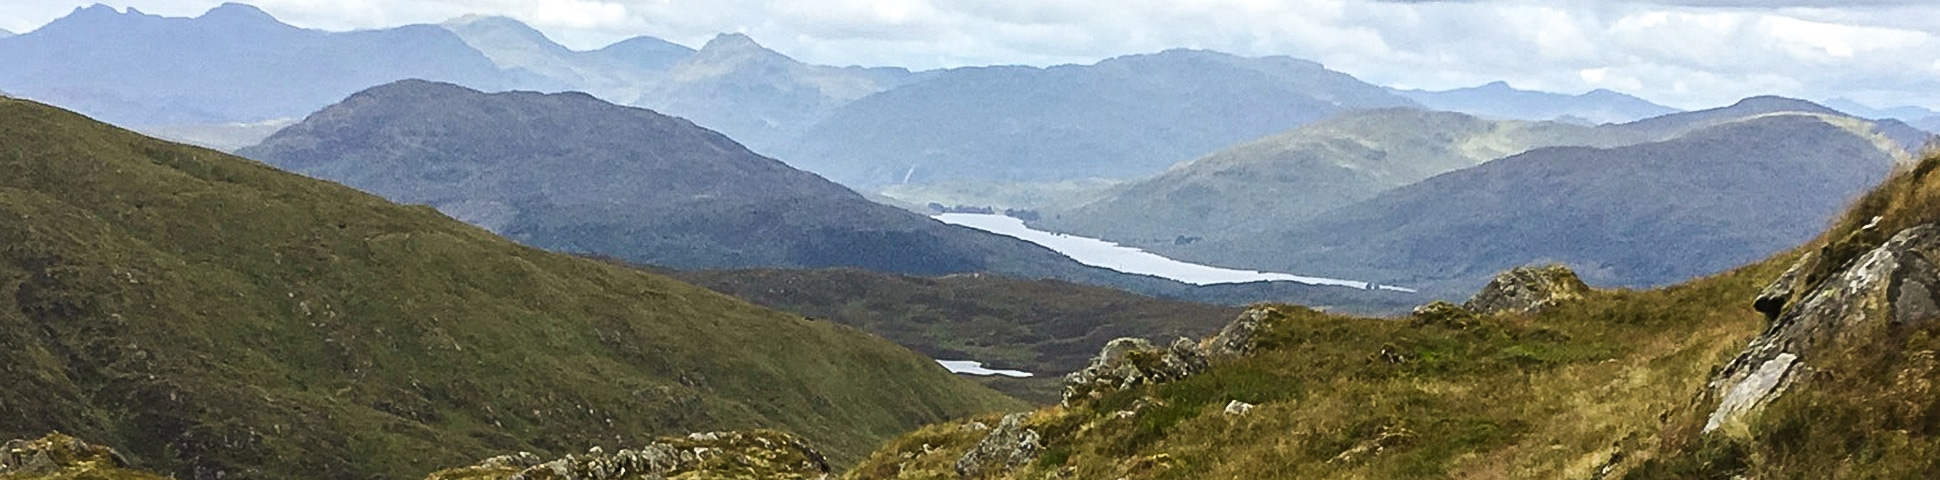 Panorama on Ben Venue from Loch Achray hike in Loch Lomond and The Trossachs area in Scotland